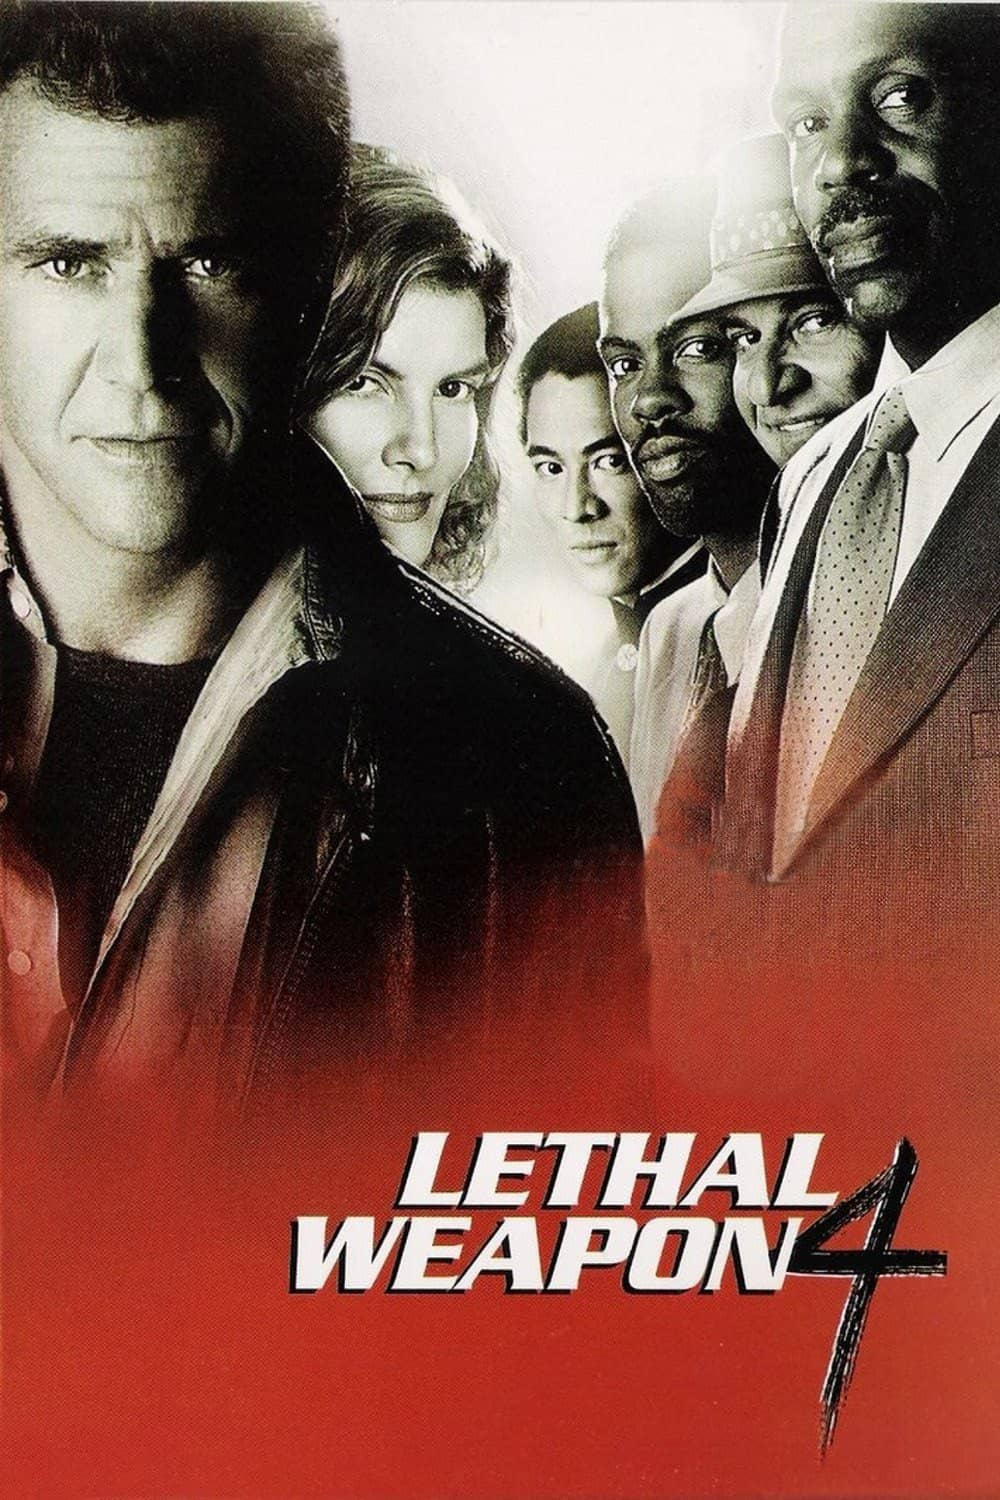 Lethal Weapon 4, 1998